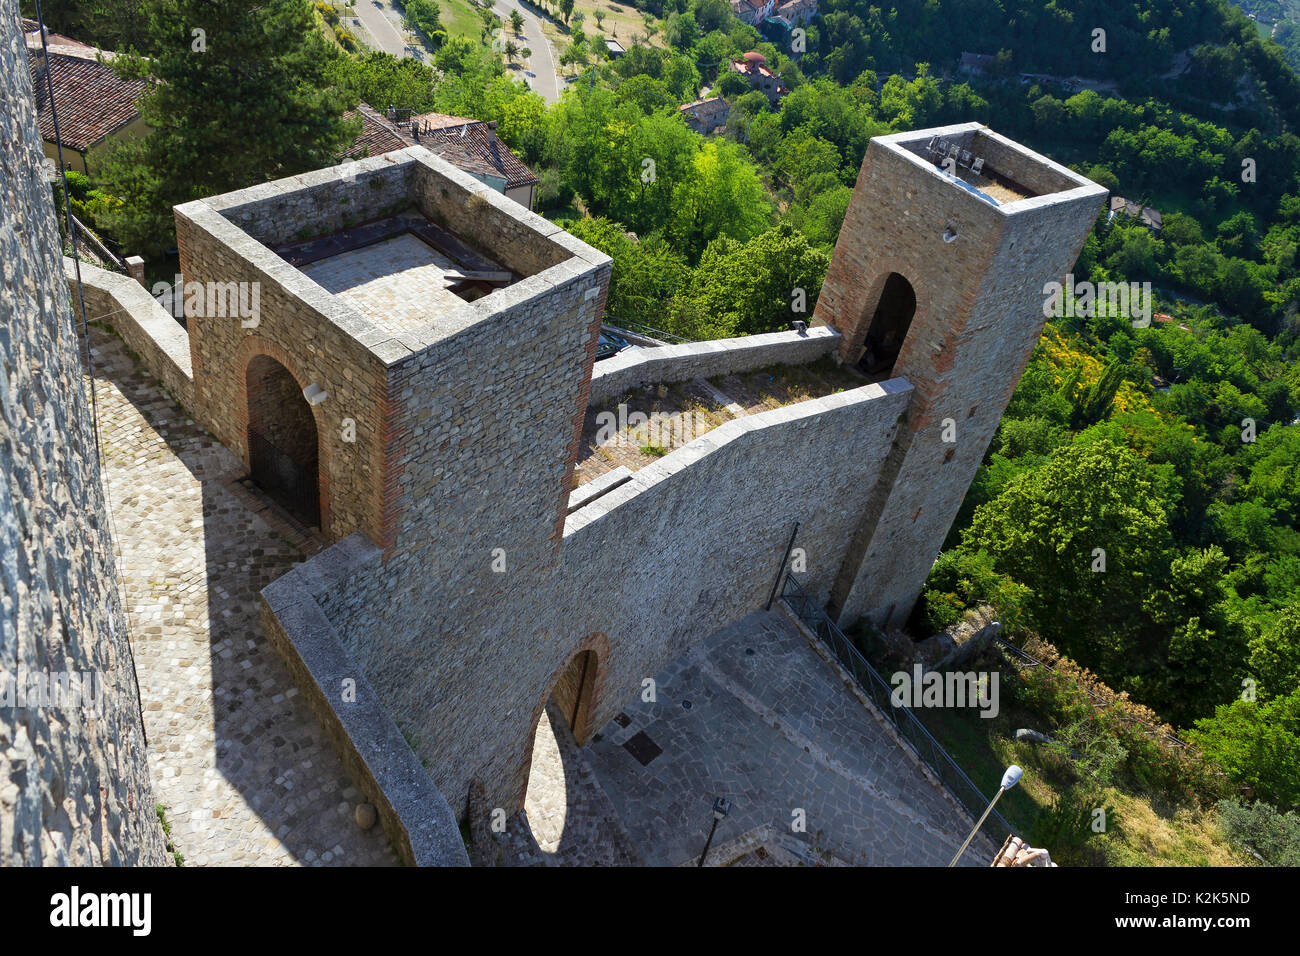 RIMINI, ITALY - JUNE 2012; Entrance of Montefiore Conca castle. - Stock Image